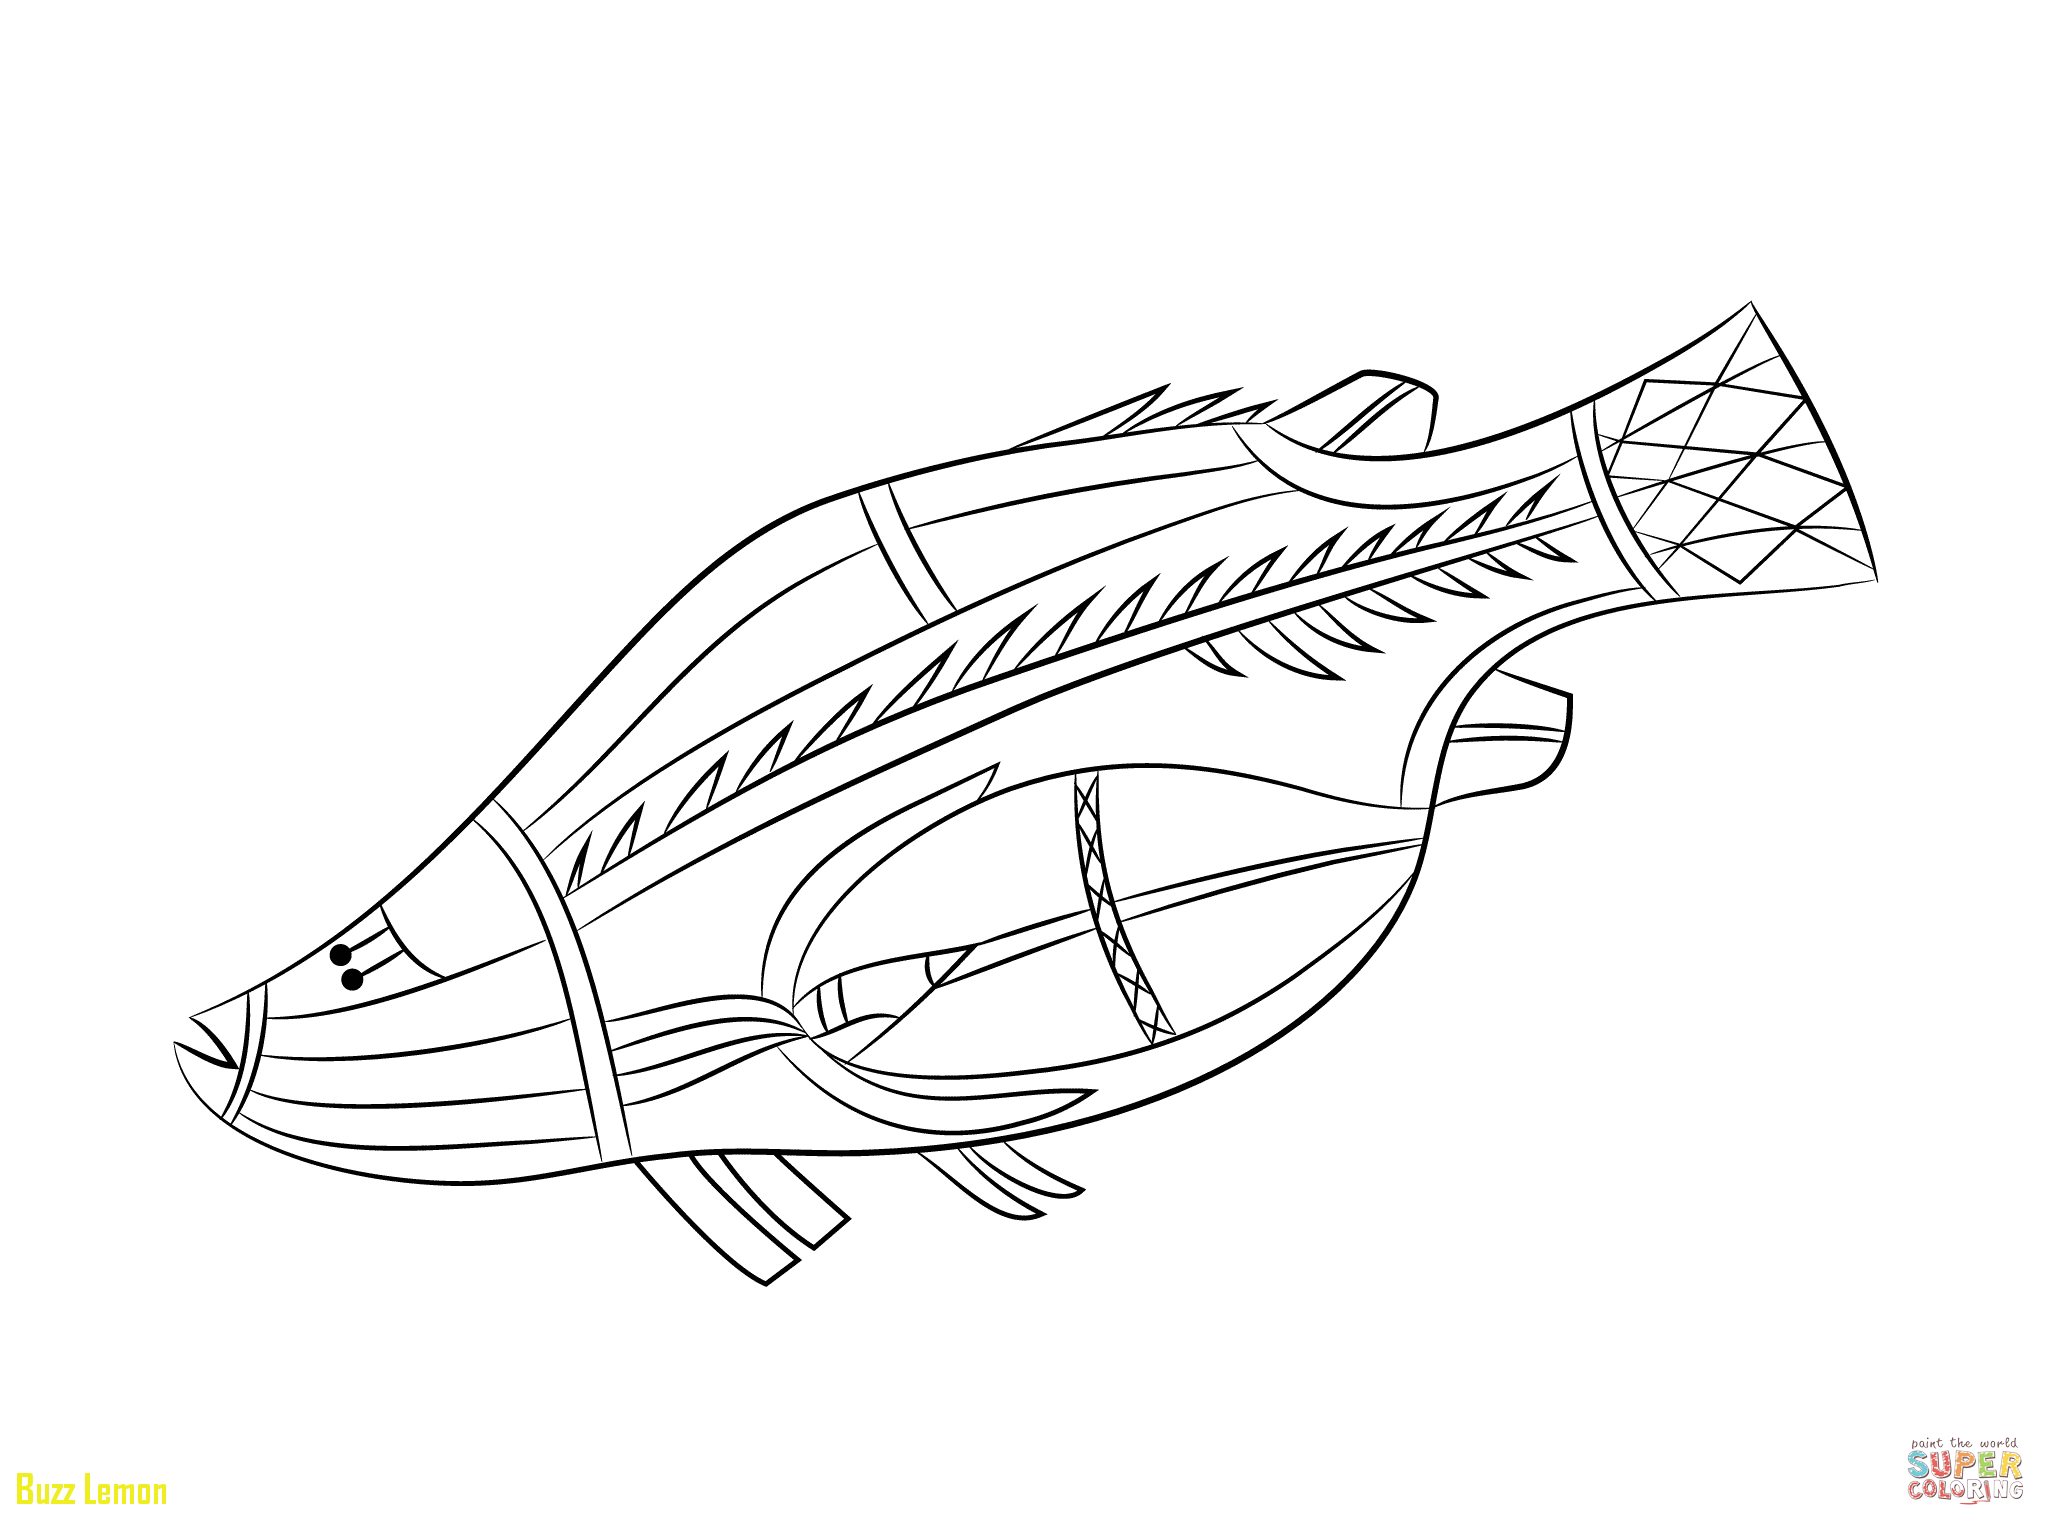 2046x1526 High Tech Aboriginal Pictures To Colour Elegant X Ray Fish